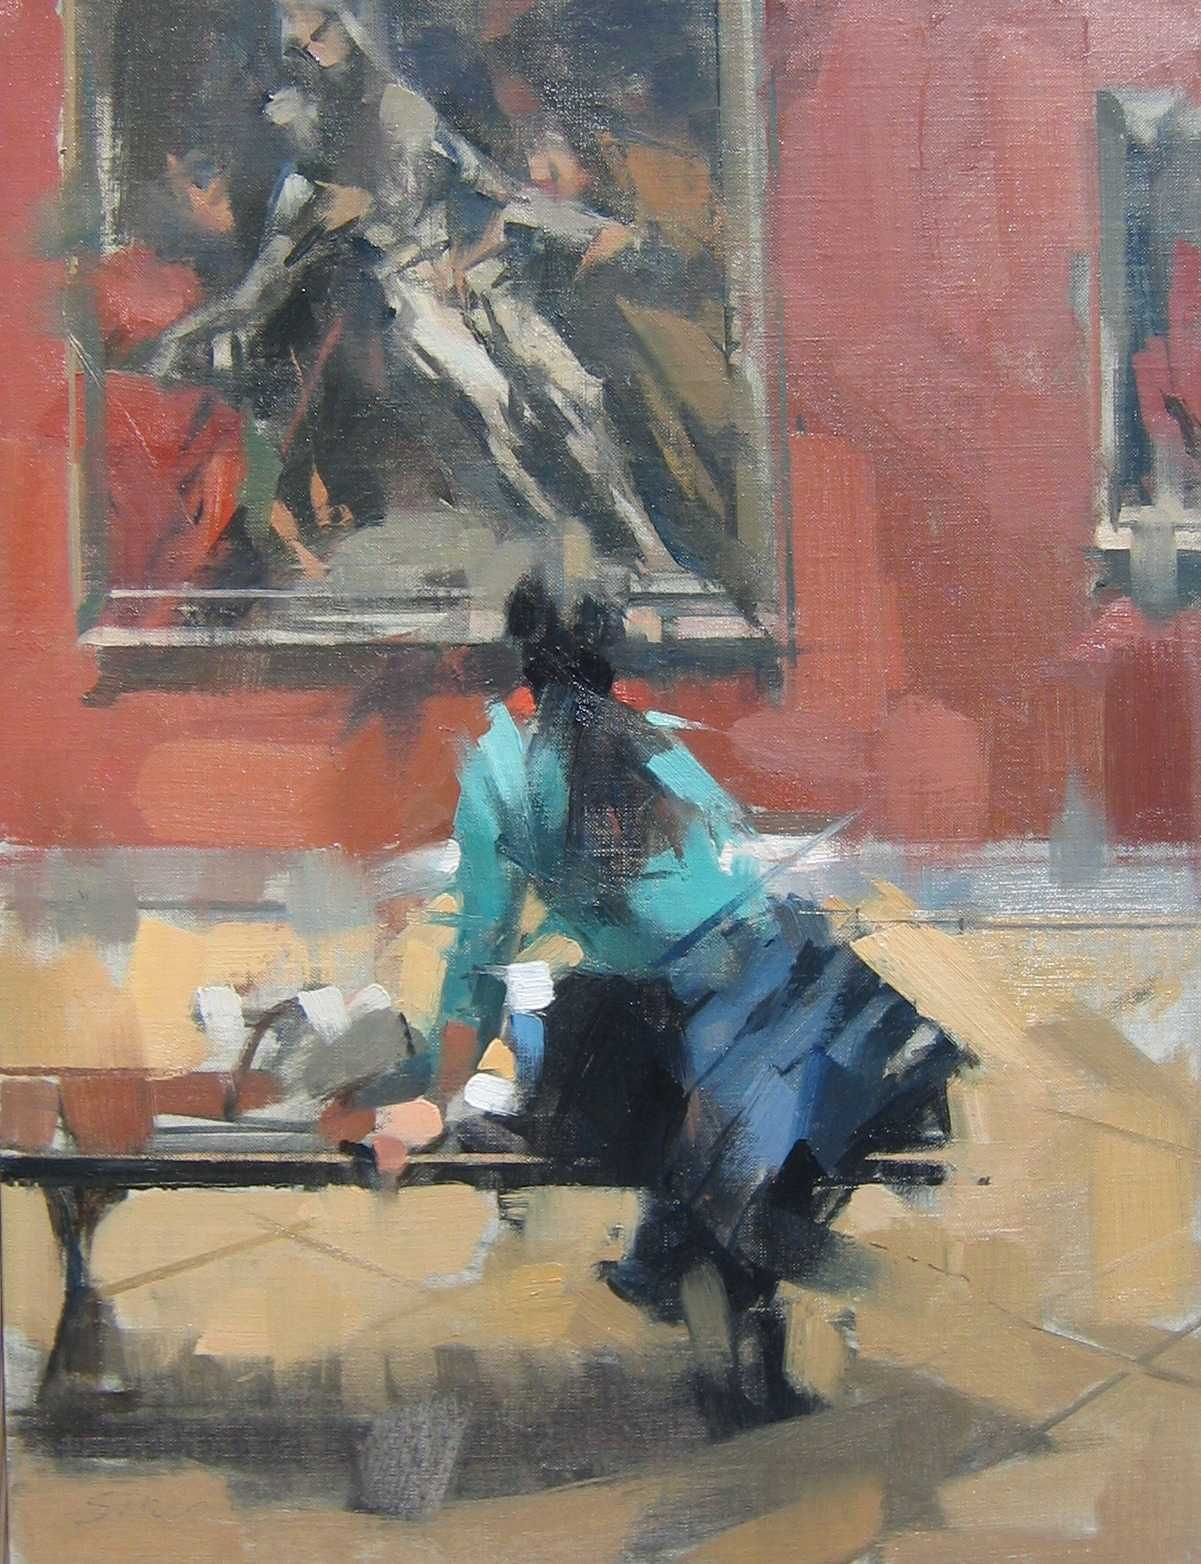 Maggie siner absolutely love her style would love to take her workshop one day figurative artart